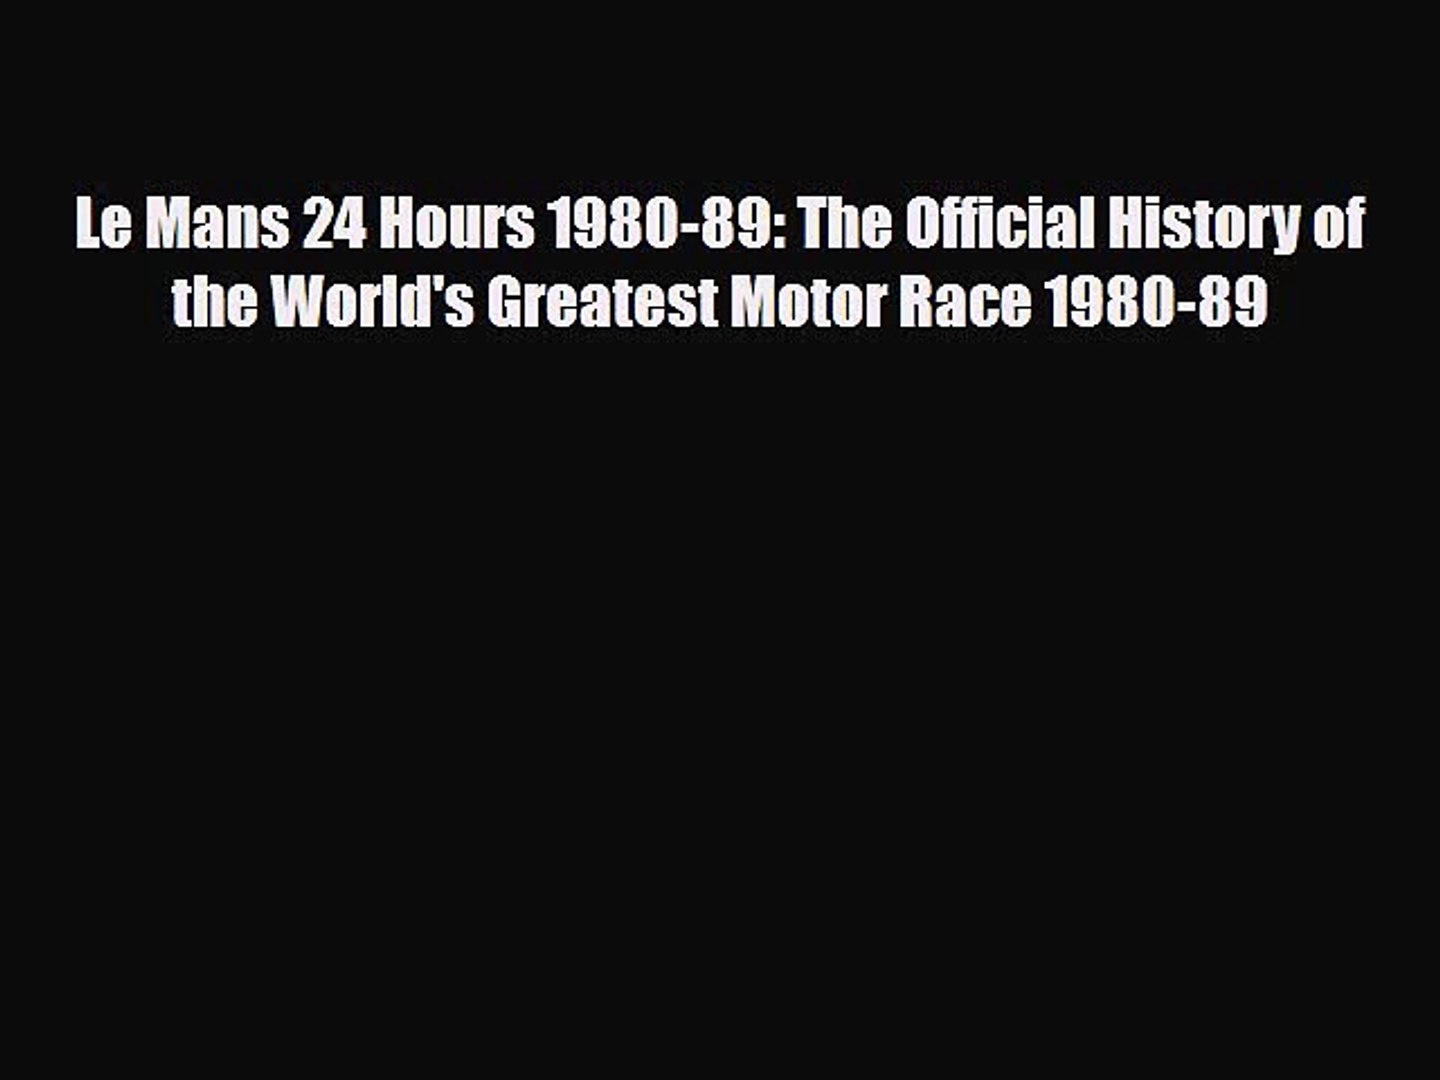 [PDF] Le Mans 24 Hours 1980-89: The Official History of the World's Greatest Motor Race 1980-89